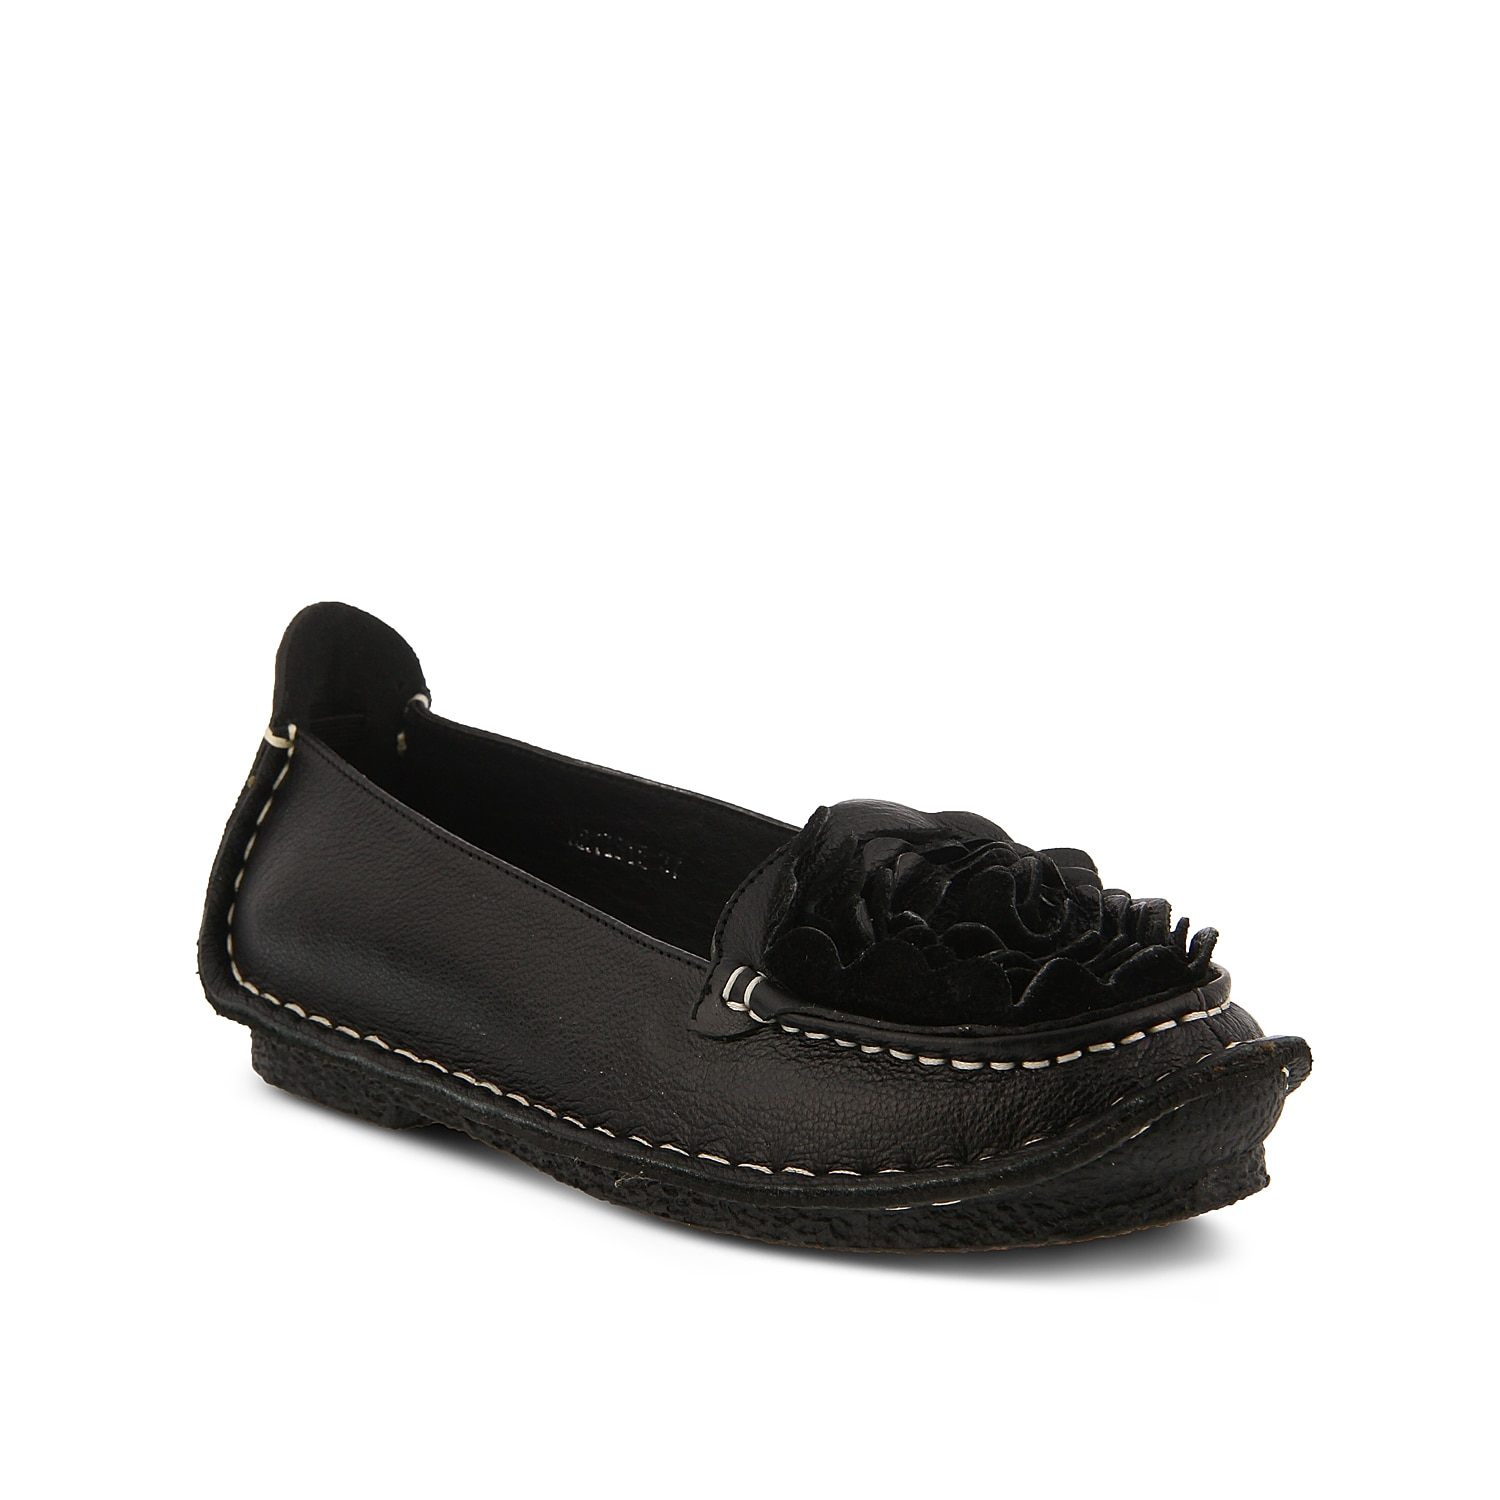 Dress up any outfit with the Dezi flat from L\\\'Artiste by Spring Step. These leather slip-ons feature a soft padded insole to keep you comfortable while you are on your feet and are finished with a bold floral applique for nature-inspired flair and texture.